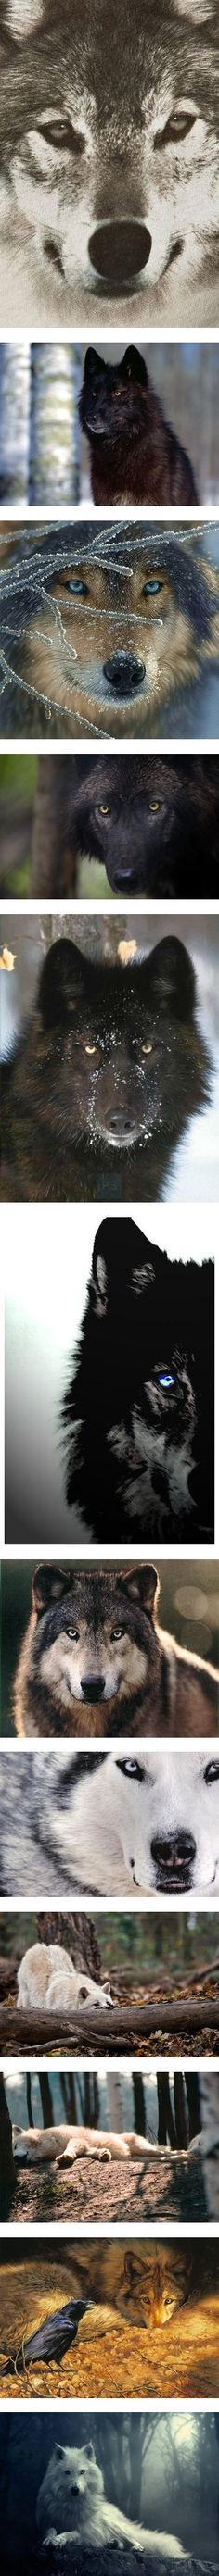 """""""Canines"""" by kay4life ❤ liked on Polyvore"""